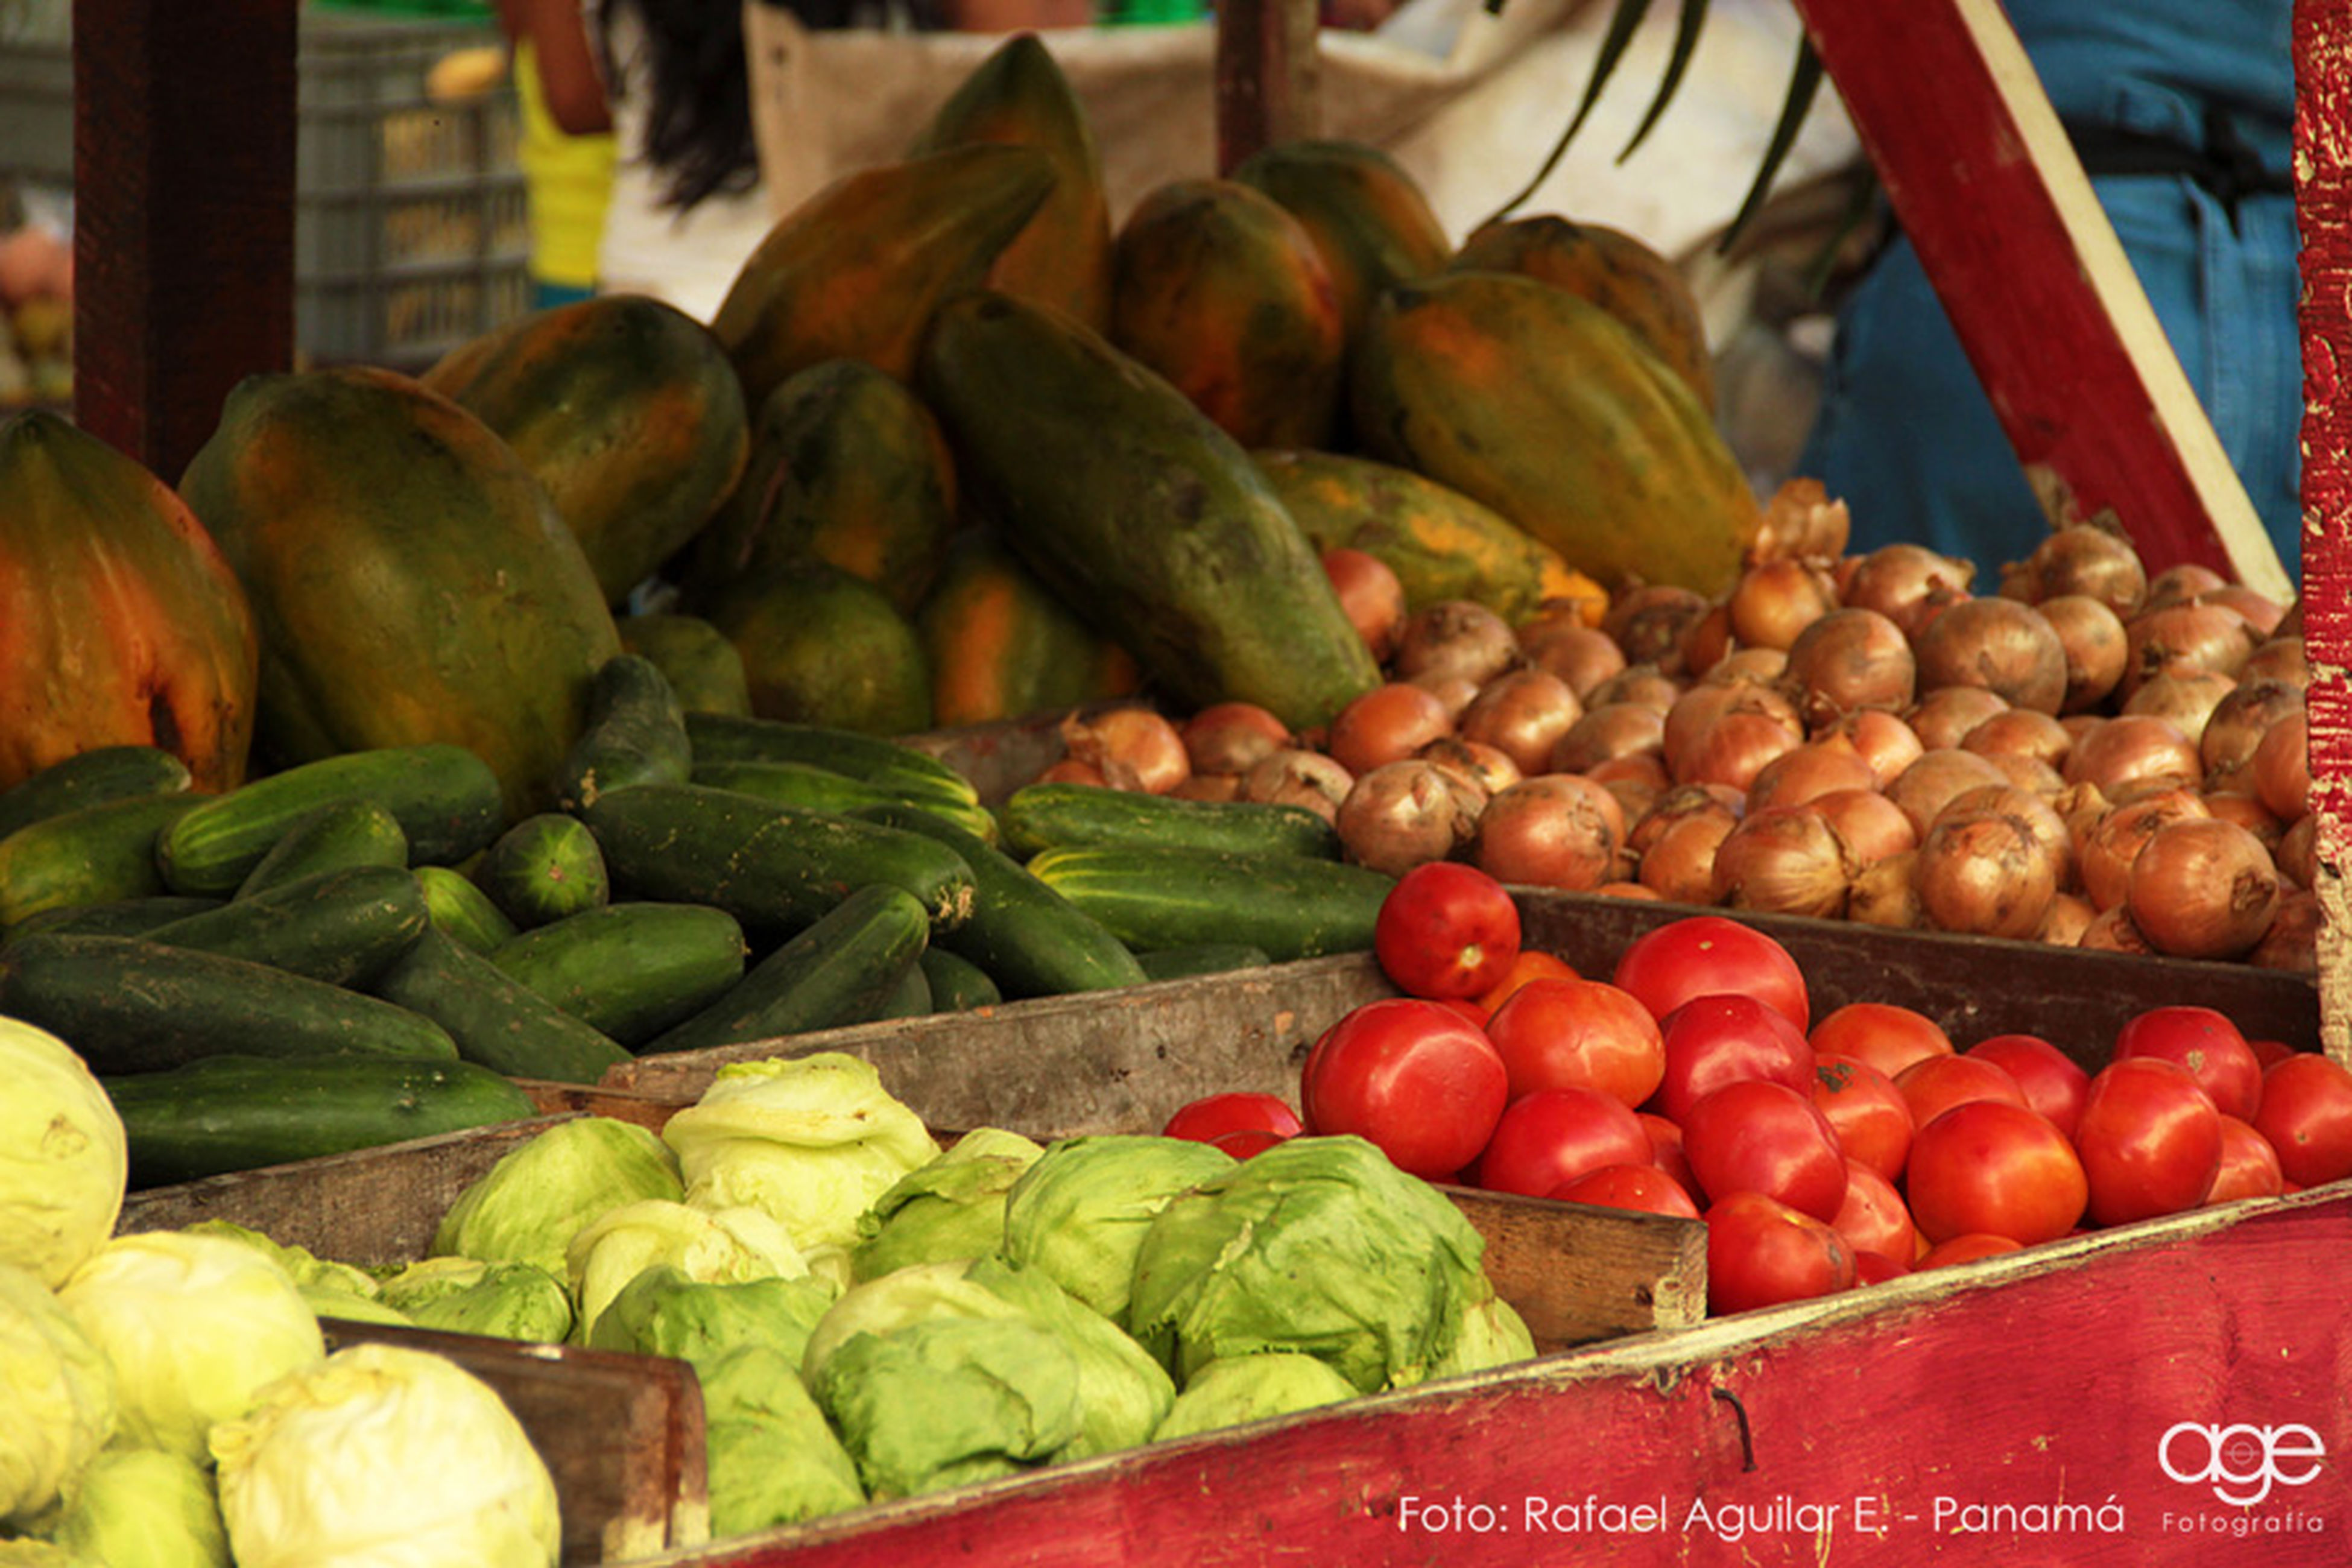 food and drink, food, healthy eating, freshness, for sale, vegetable, market stall, retail, market, abundance, large group of objects, choice, sale, still life, variation, display, indoors, raw food, fruit, close-up